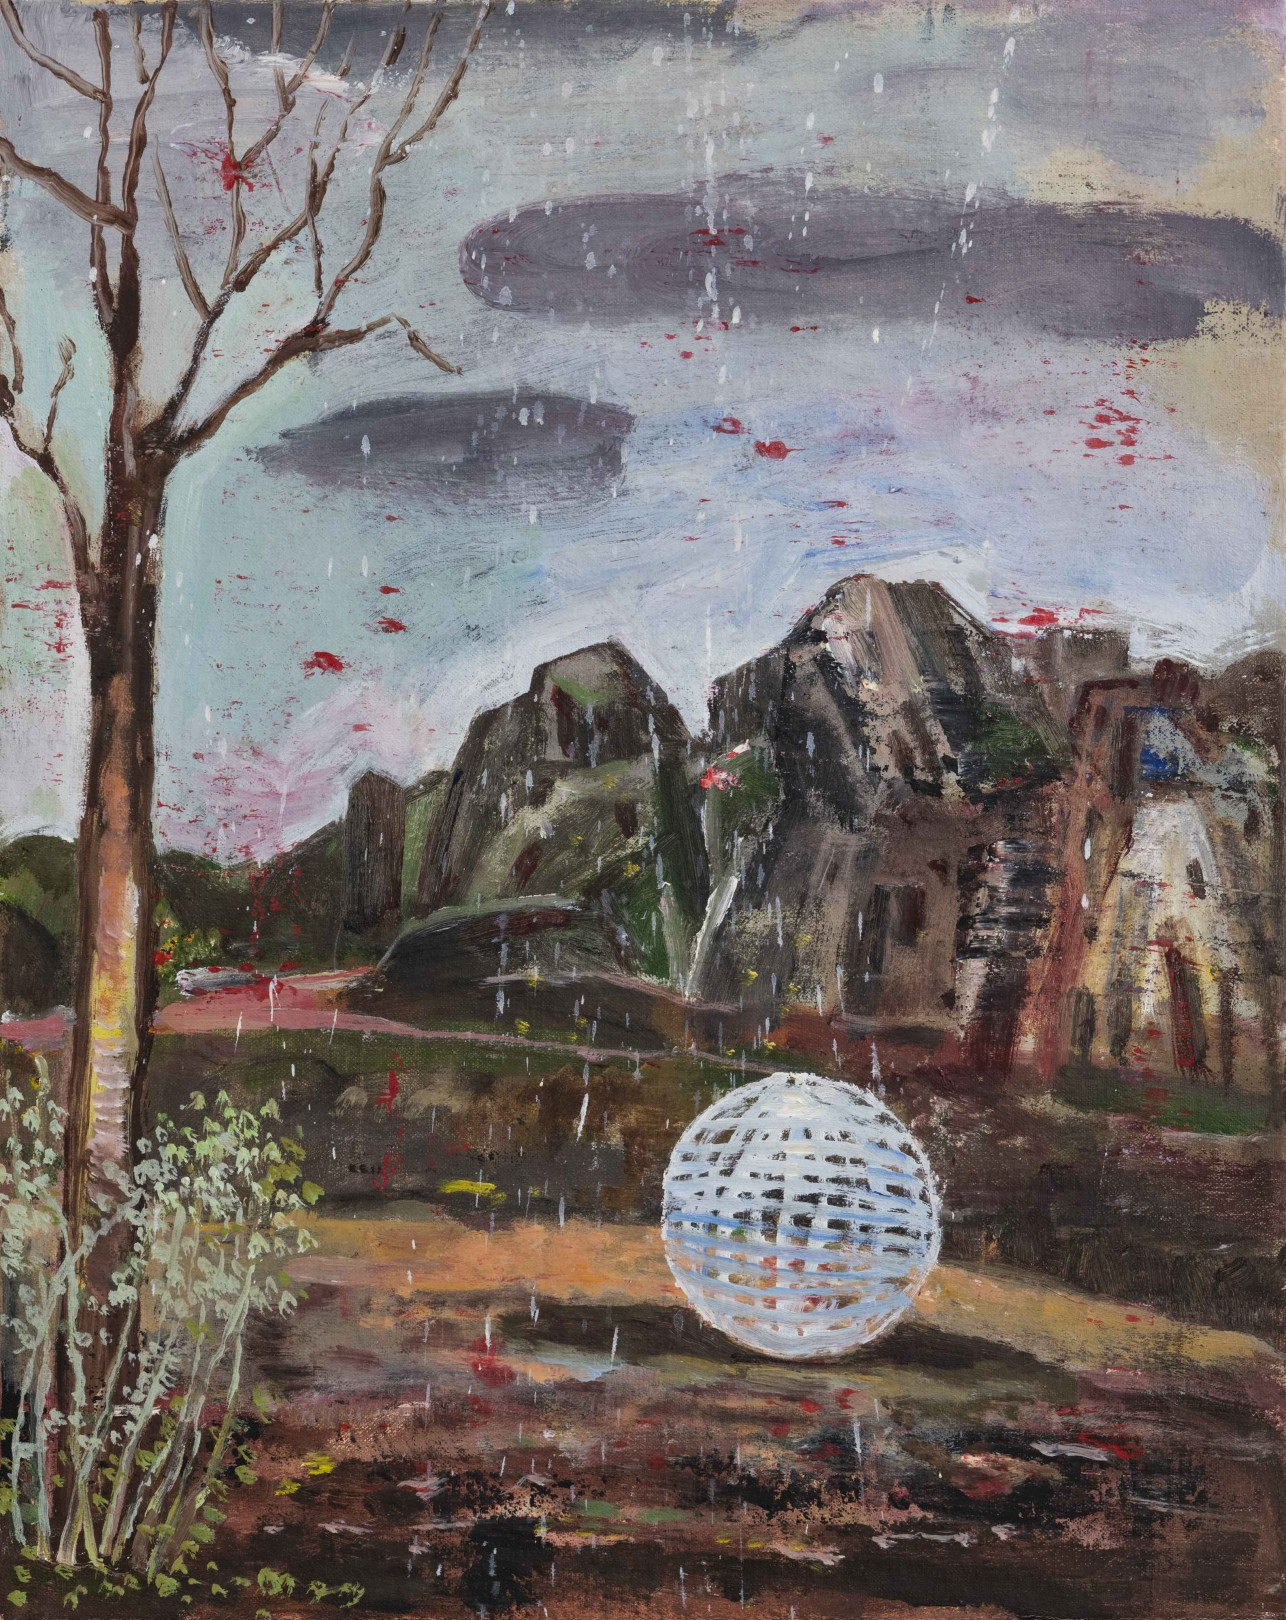 Nicky Nodjoumi The Ball, 2018 Oil on canvas 51 x 41 cm. / 20 x 16 in.